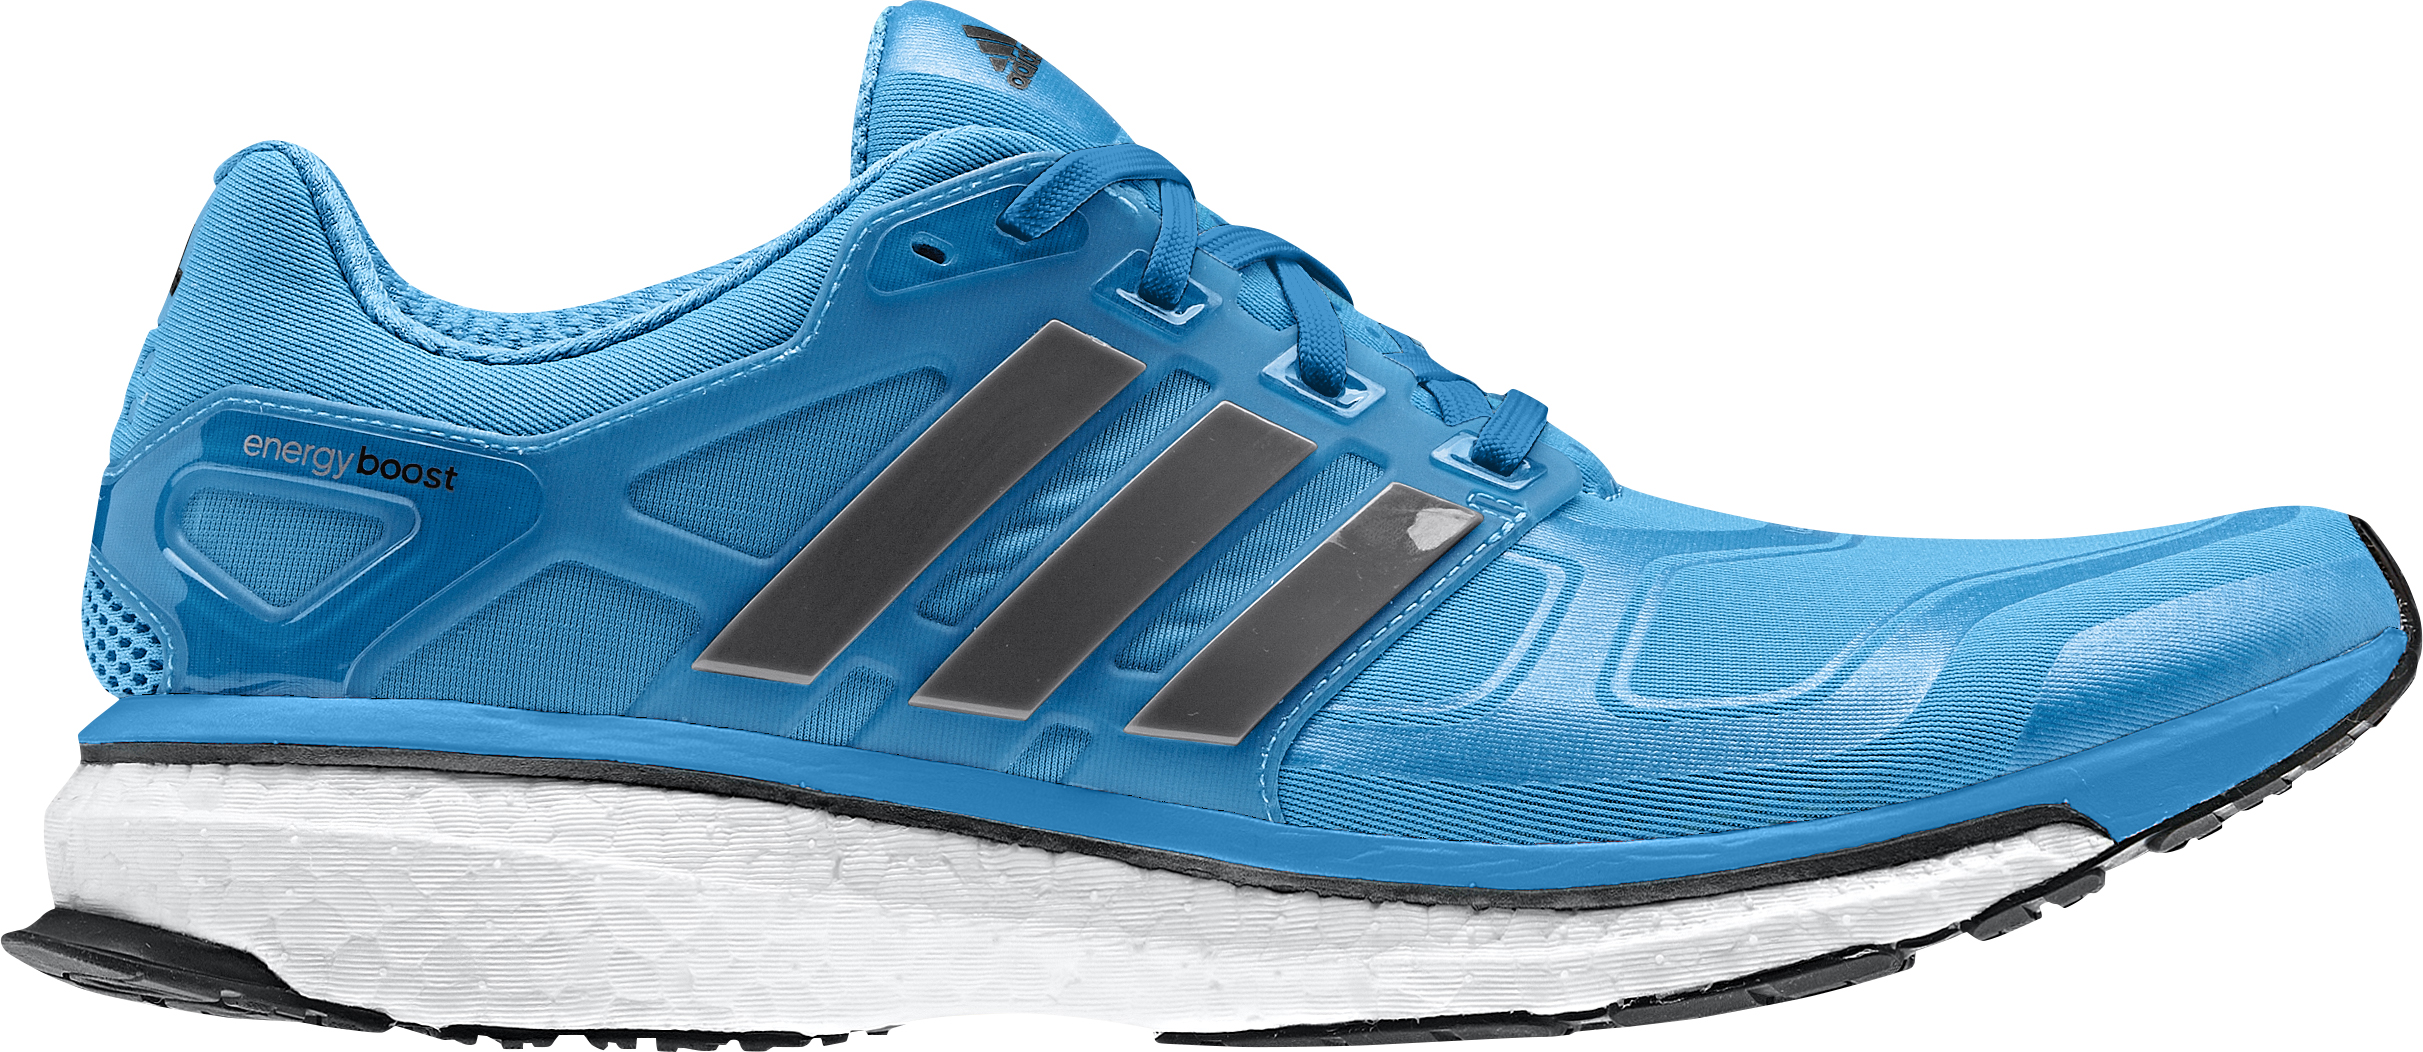 Adidas Energy Boost 2 Shoes - SS14